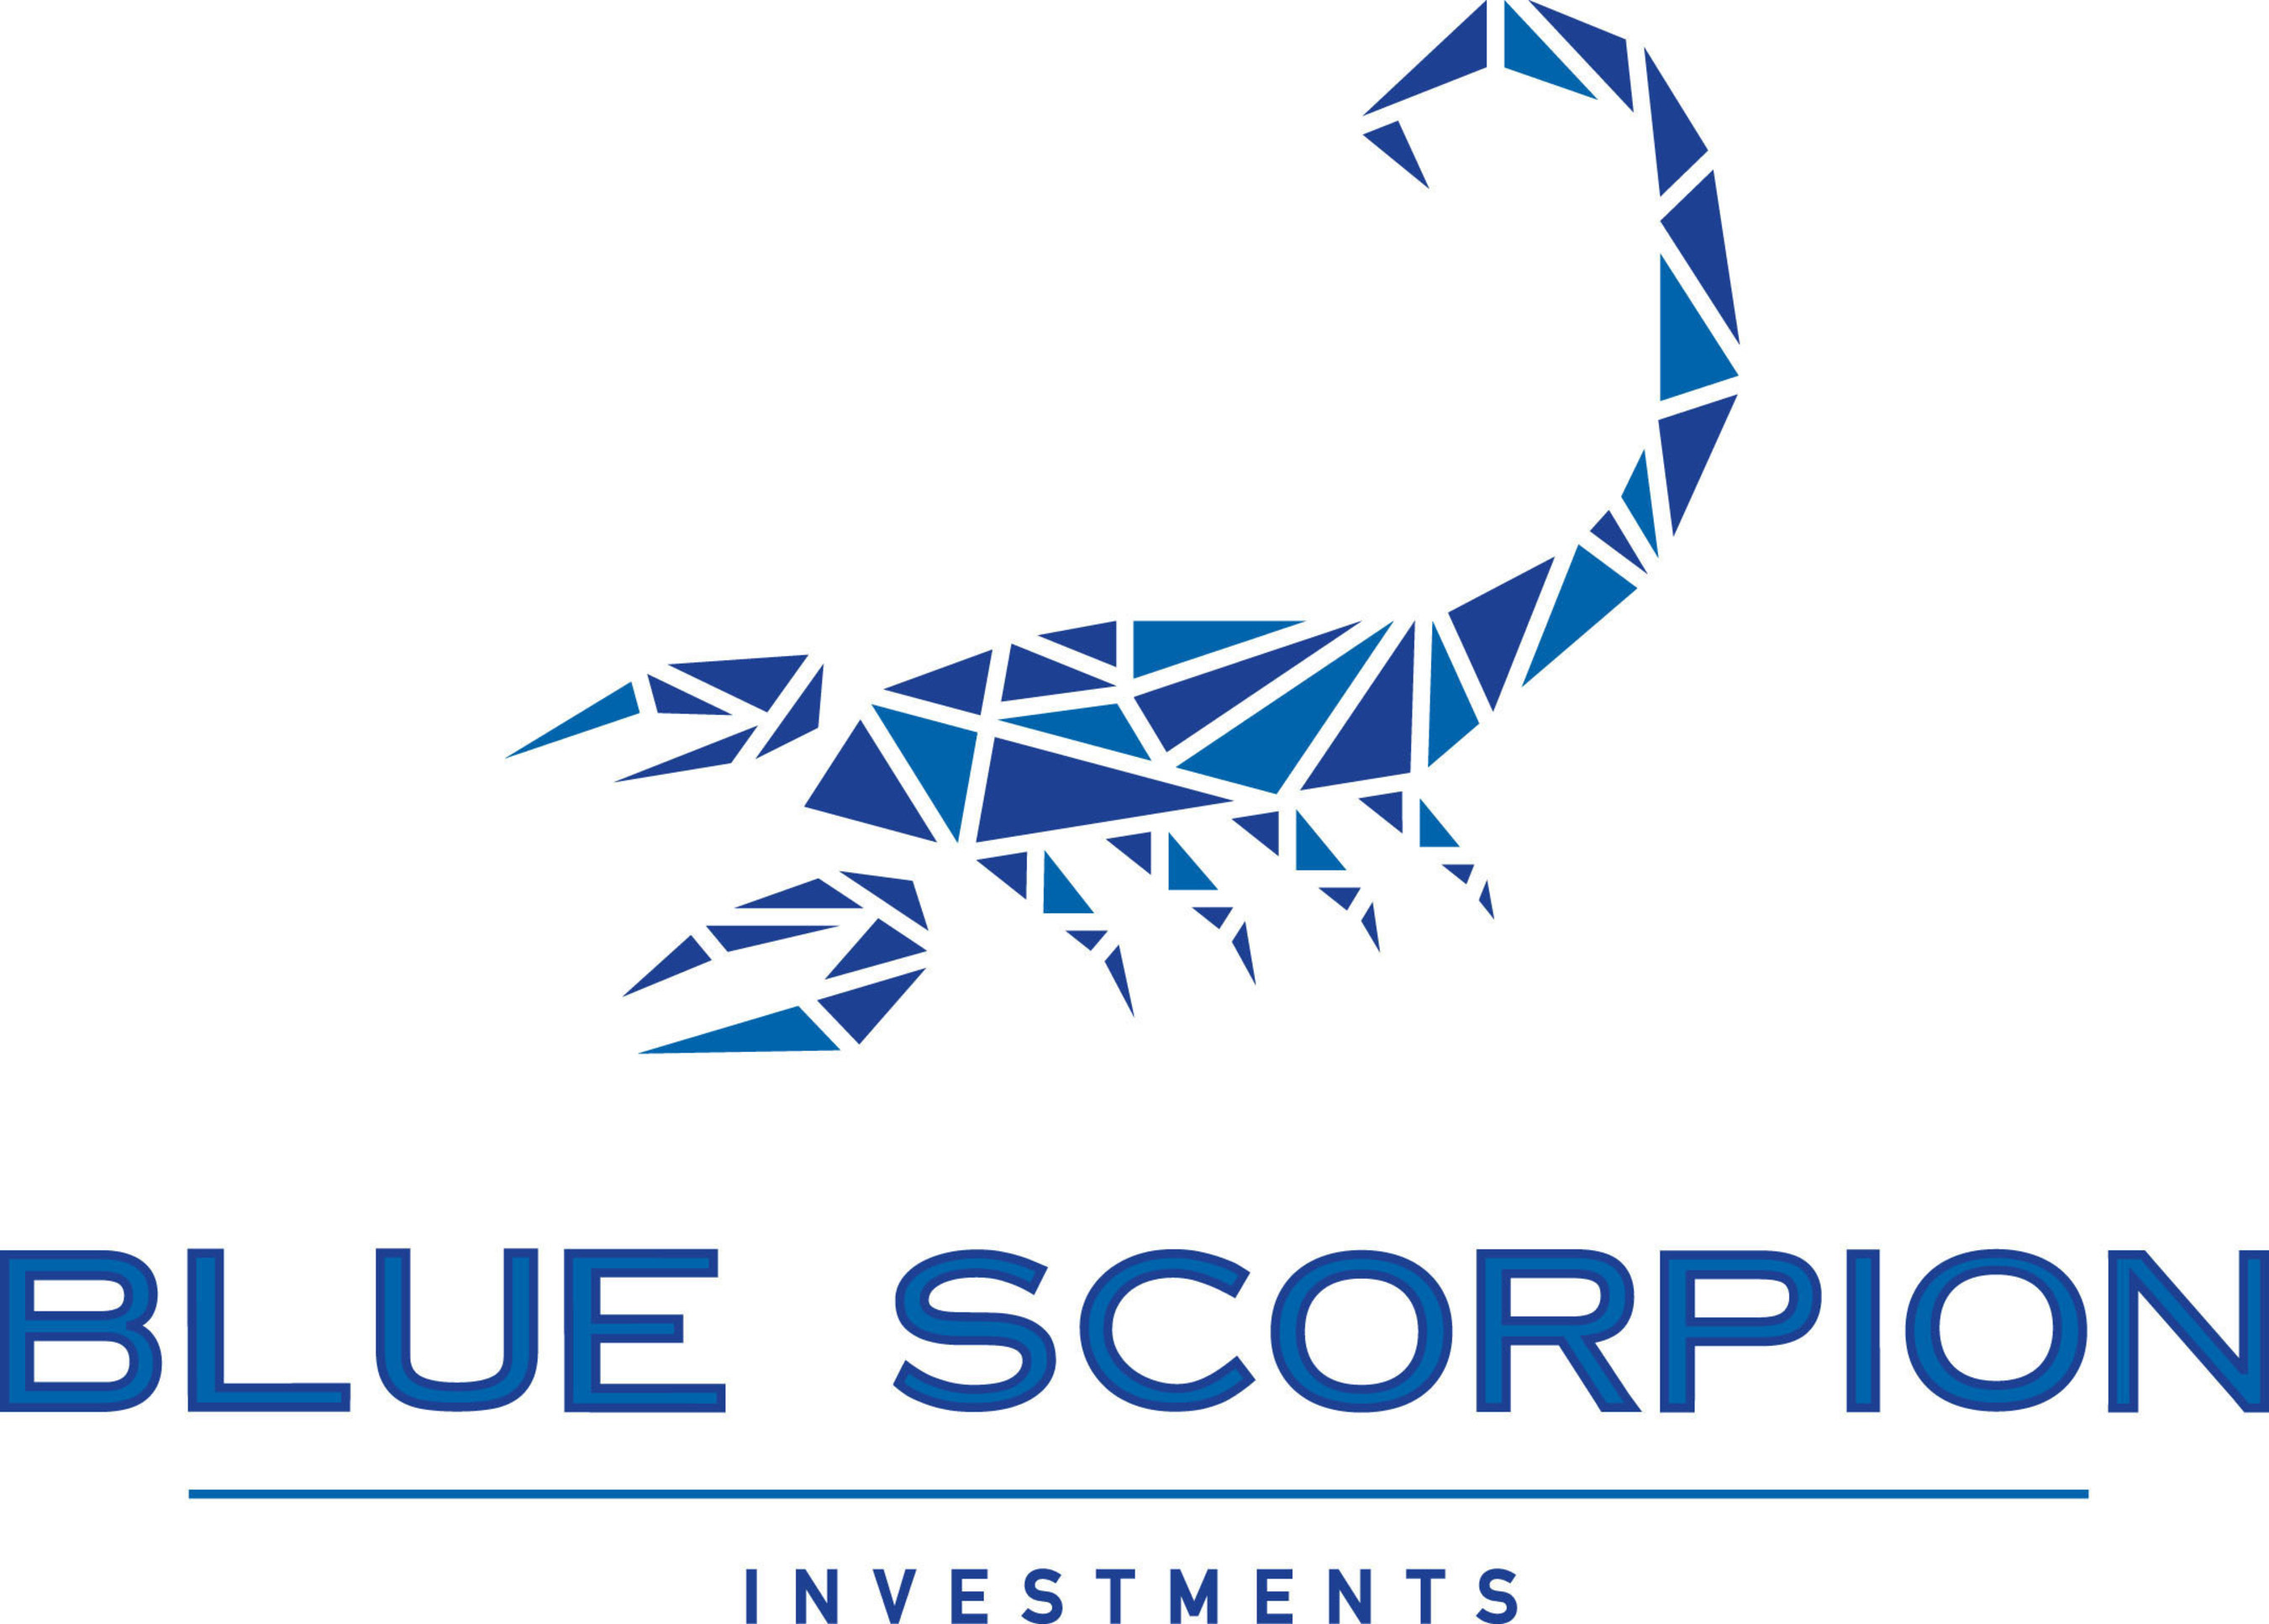 Blue Scorpion Investments Completes Funding Round For HOOCH' App Bringing Network Of Added Value High Profile Investors